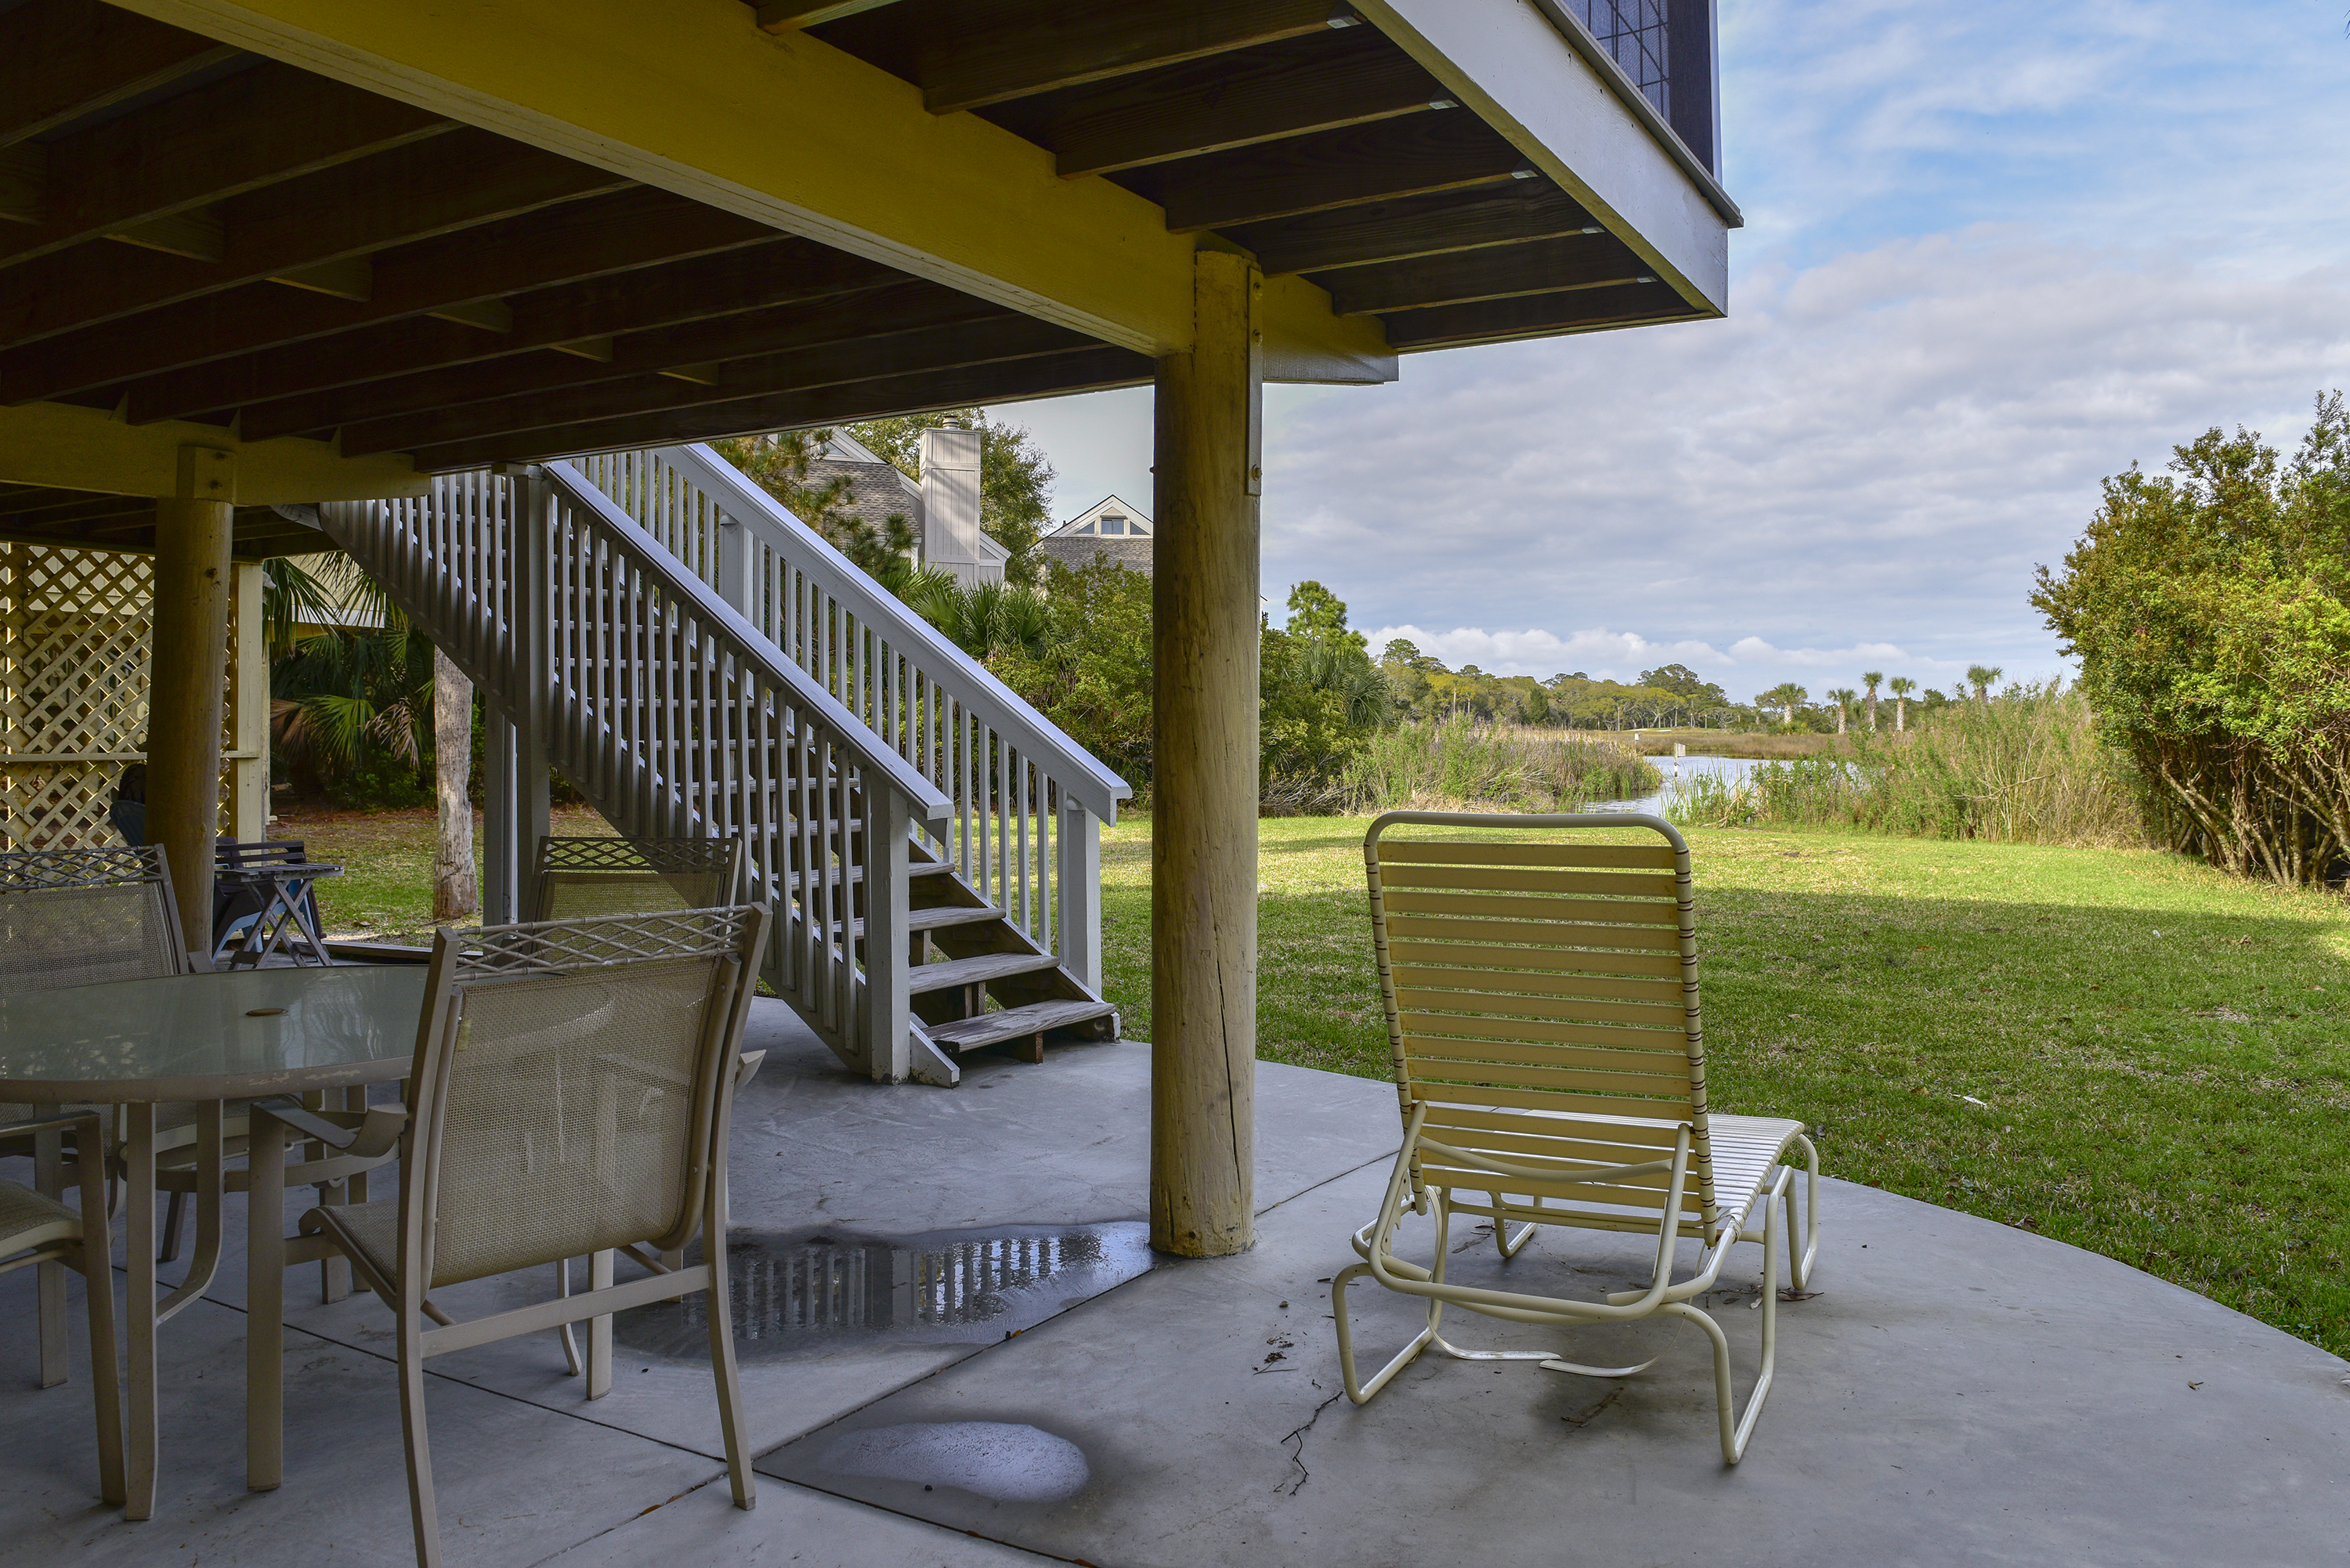 The patio has space for a quick lunch in between beach time or an afternoon nap on the chaise.